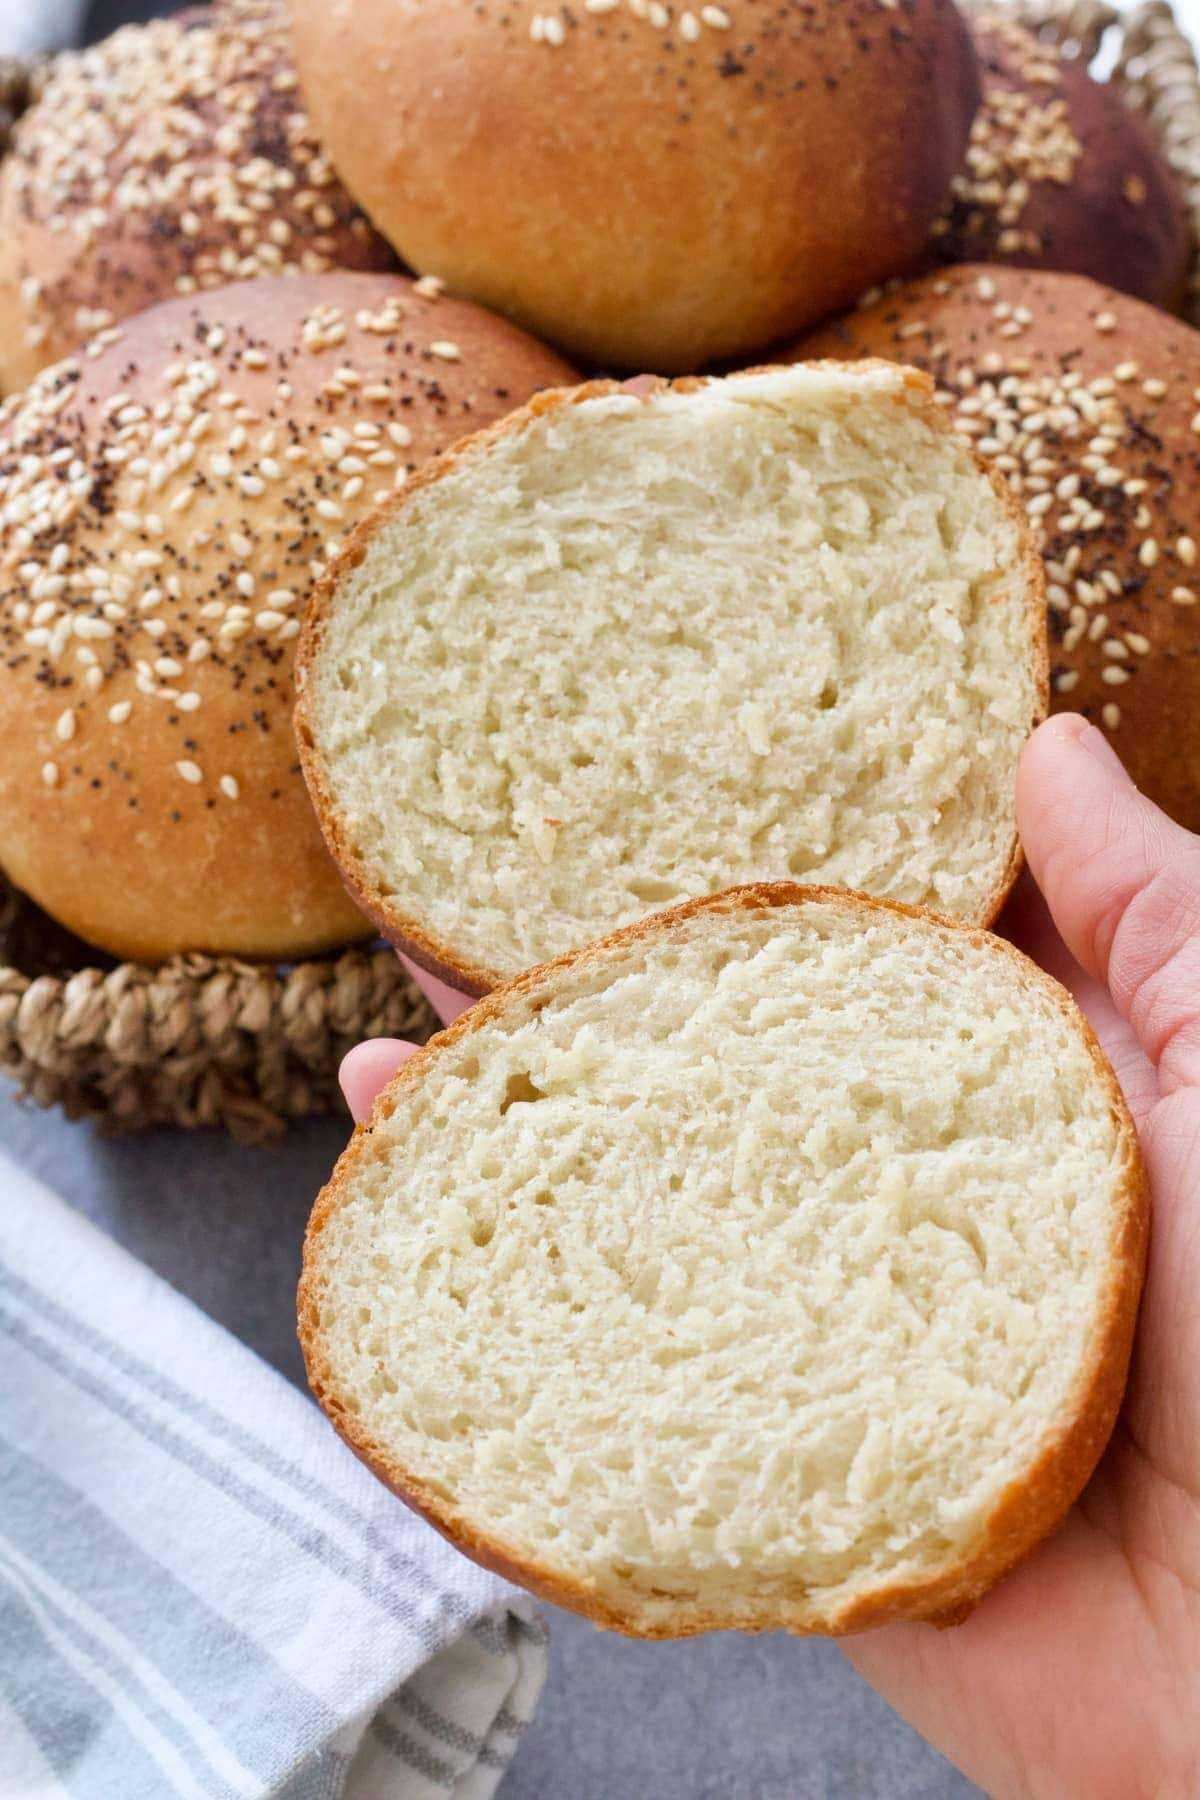 Bread roll cut in half showing the inside crumb.